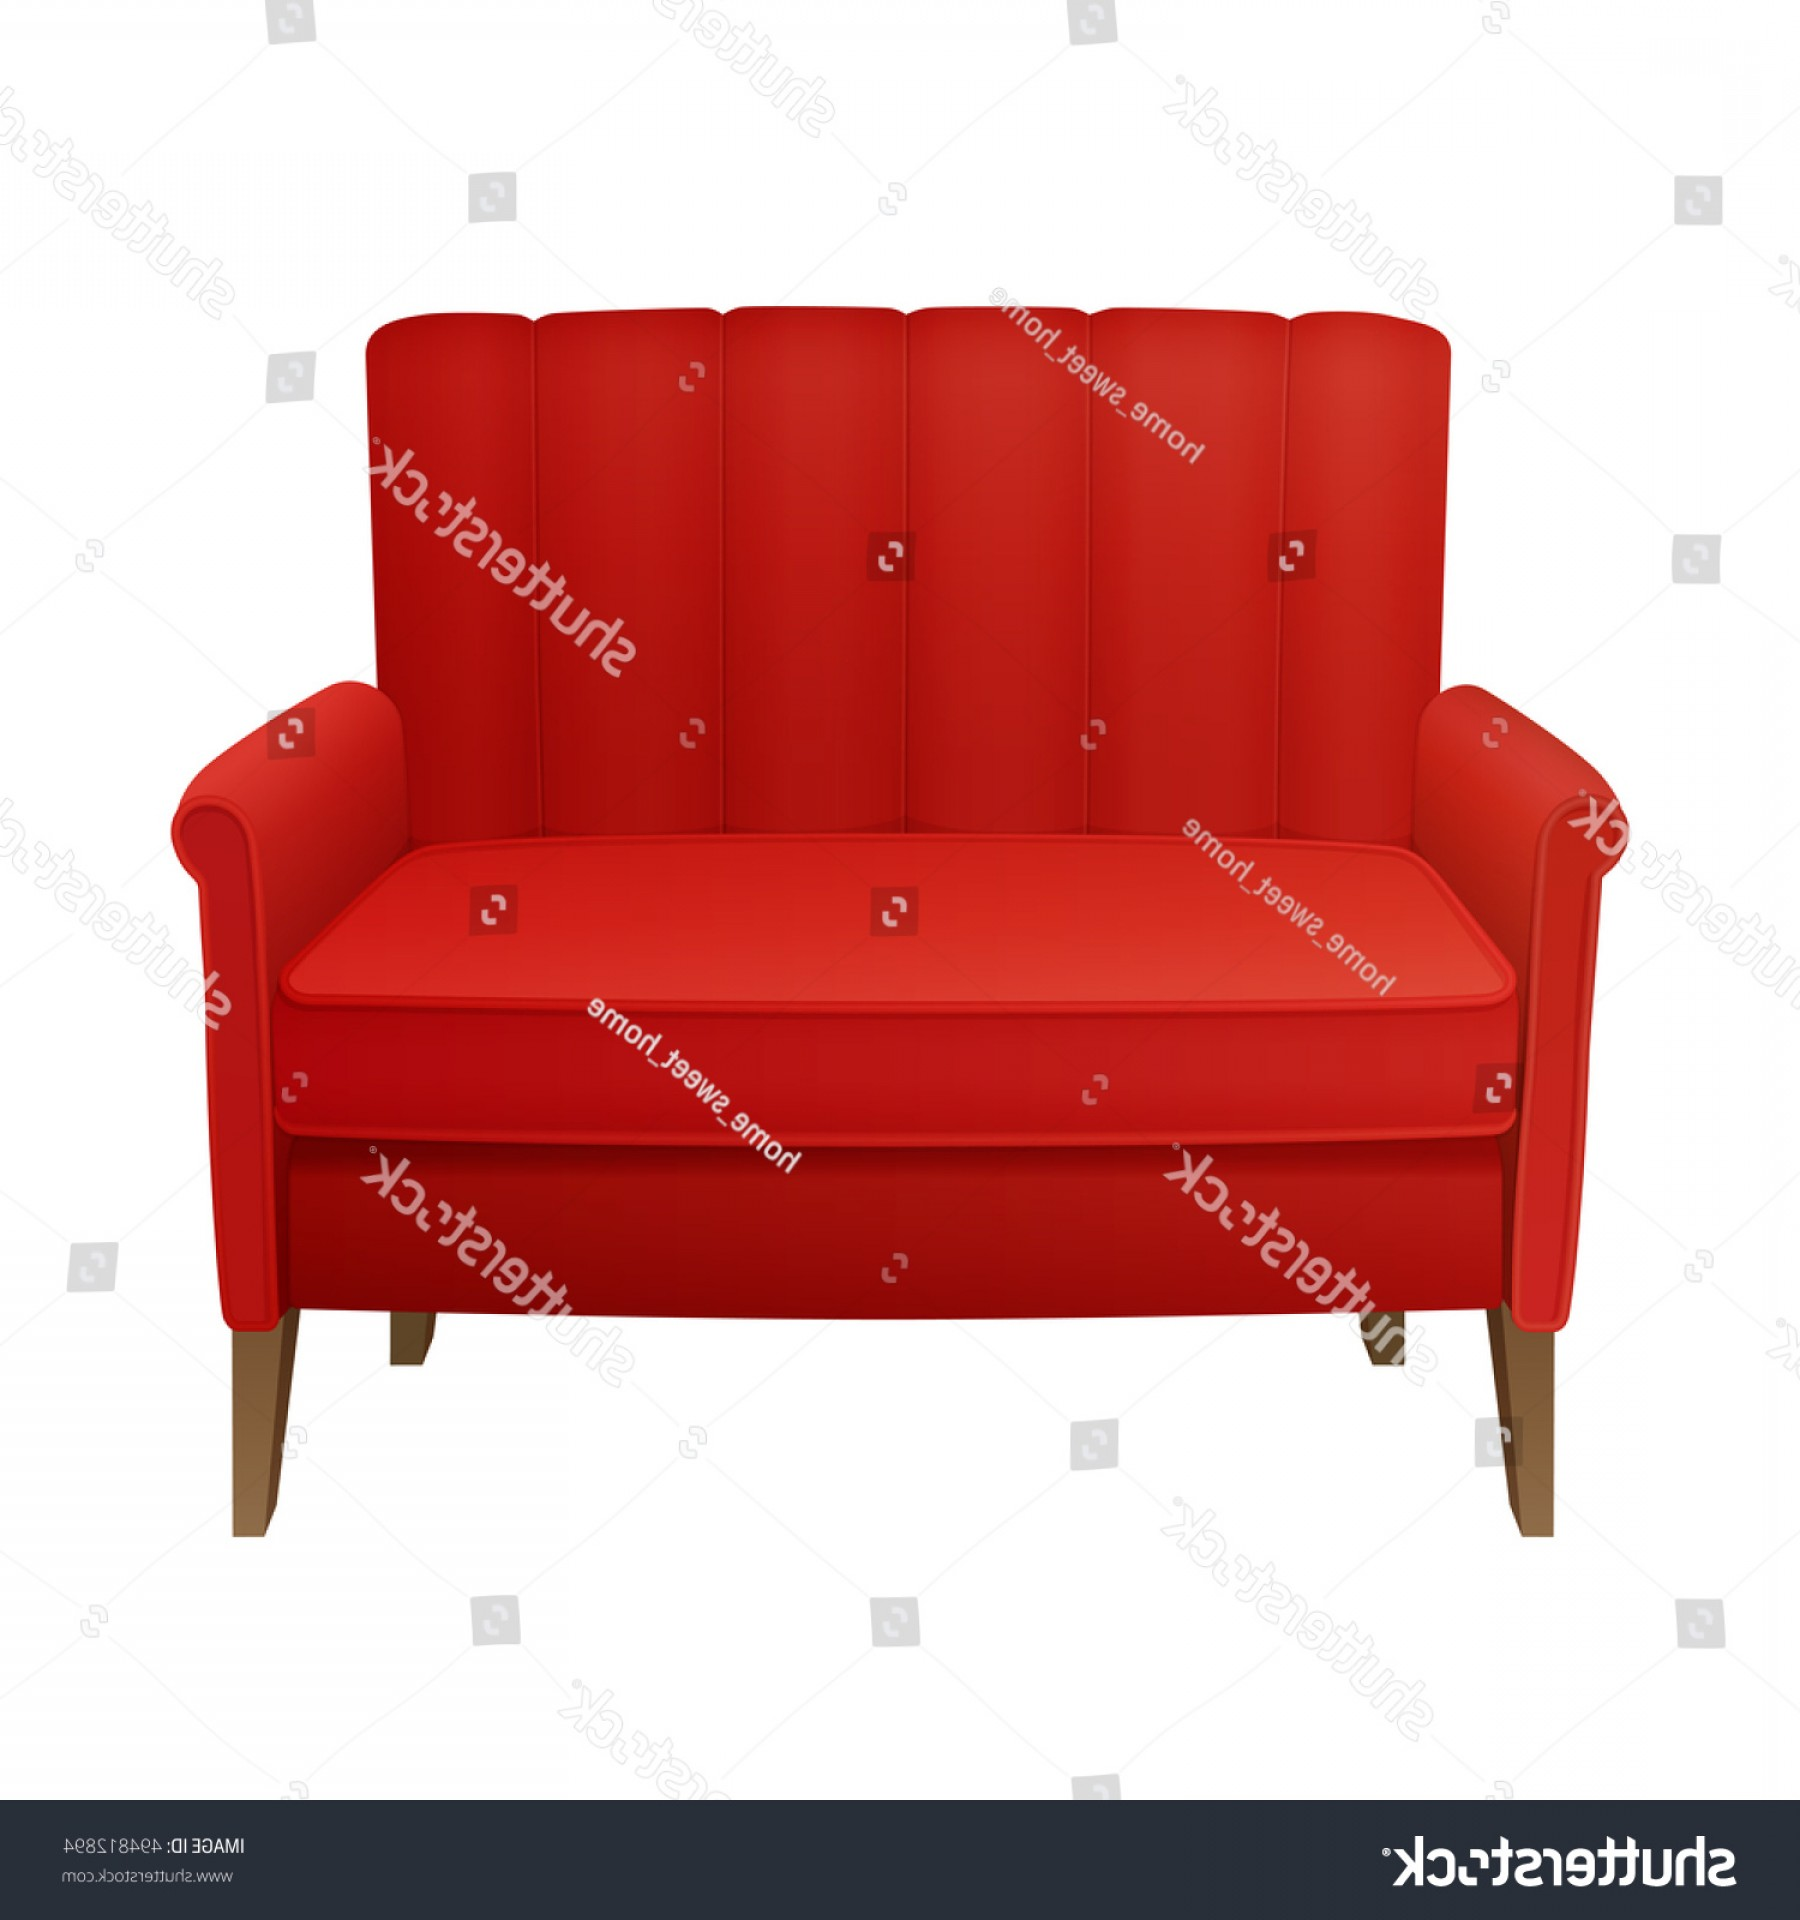 Back Of The Couch Vector: Retro Red High Quilted Back Sofa